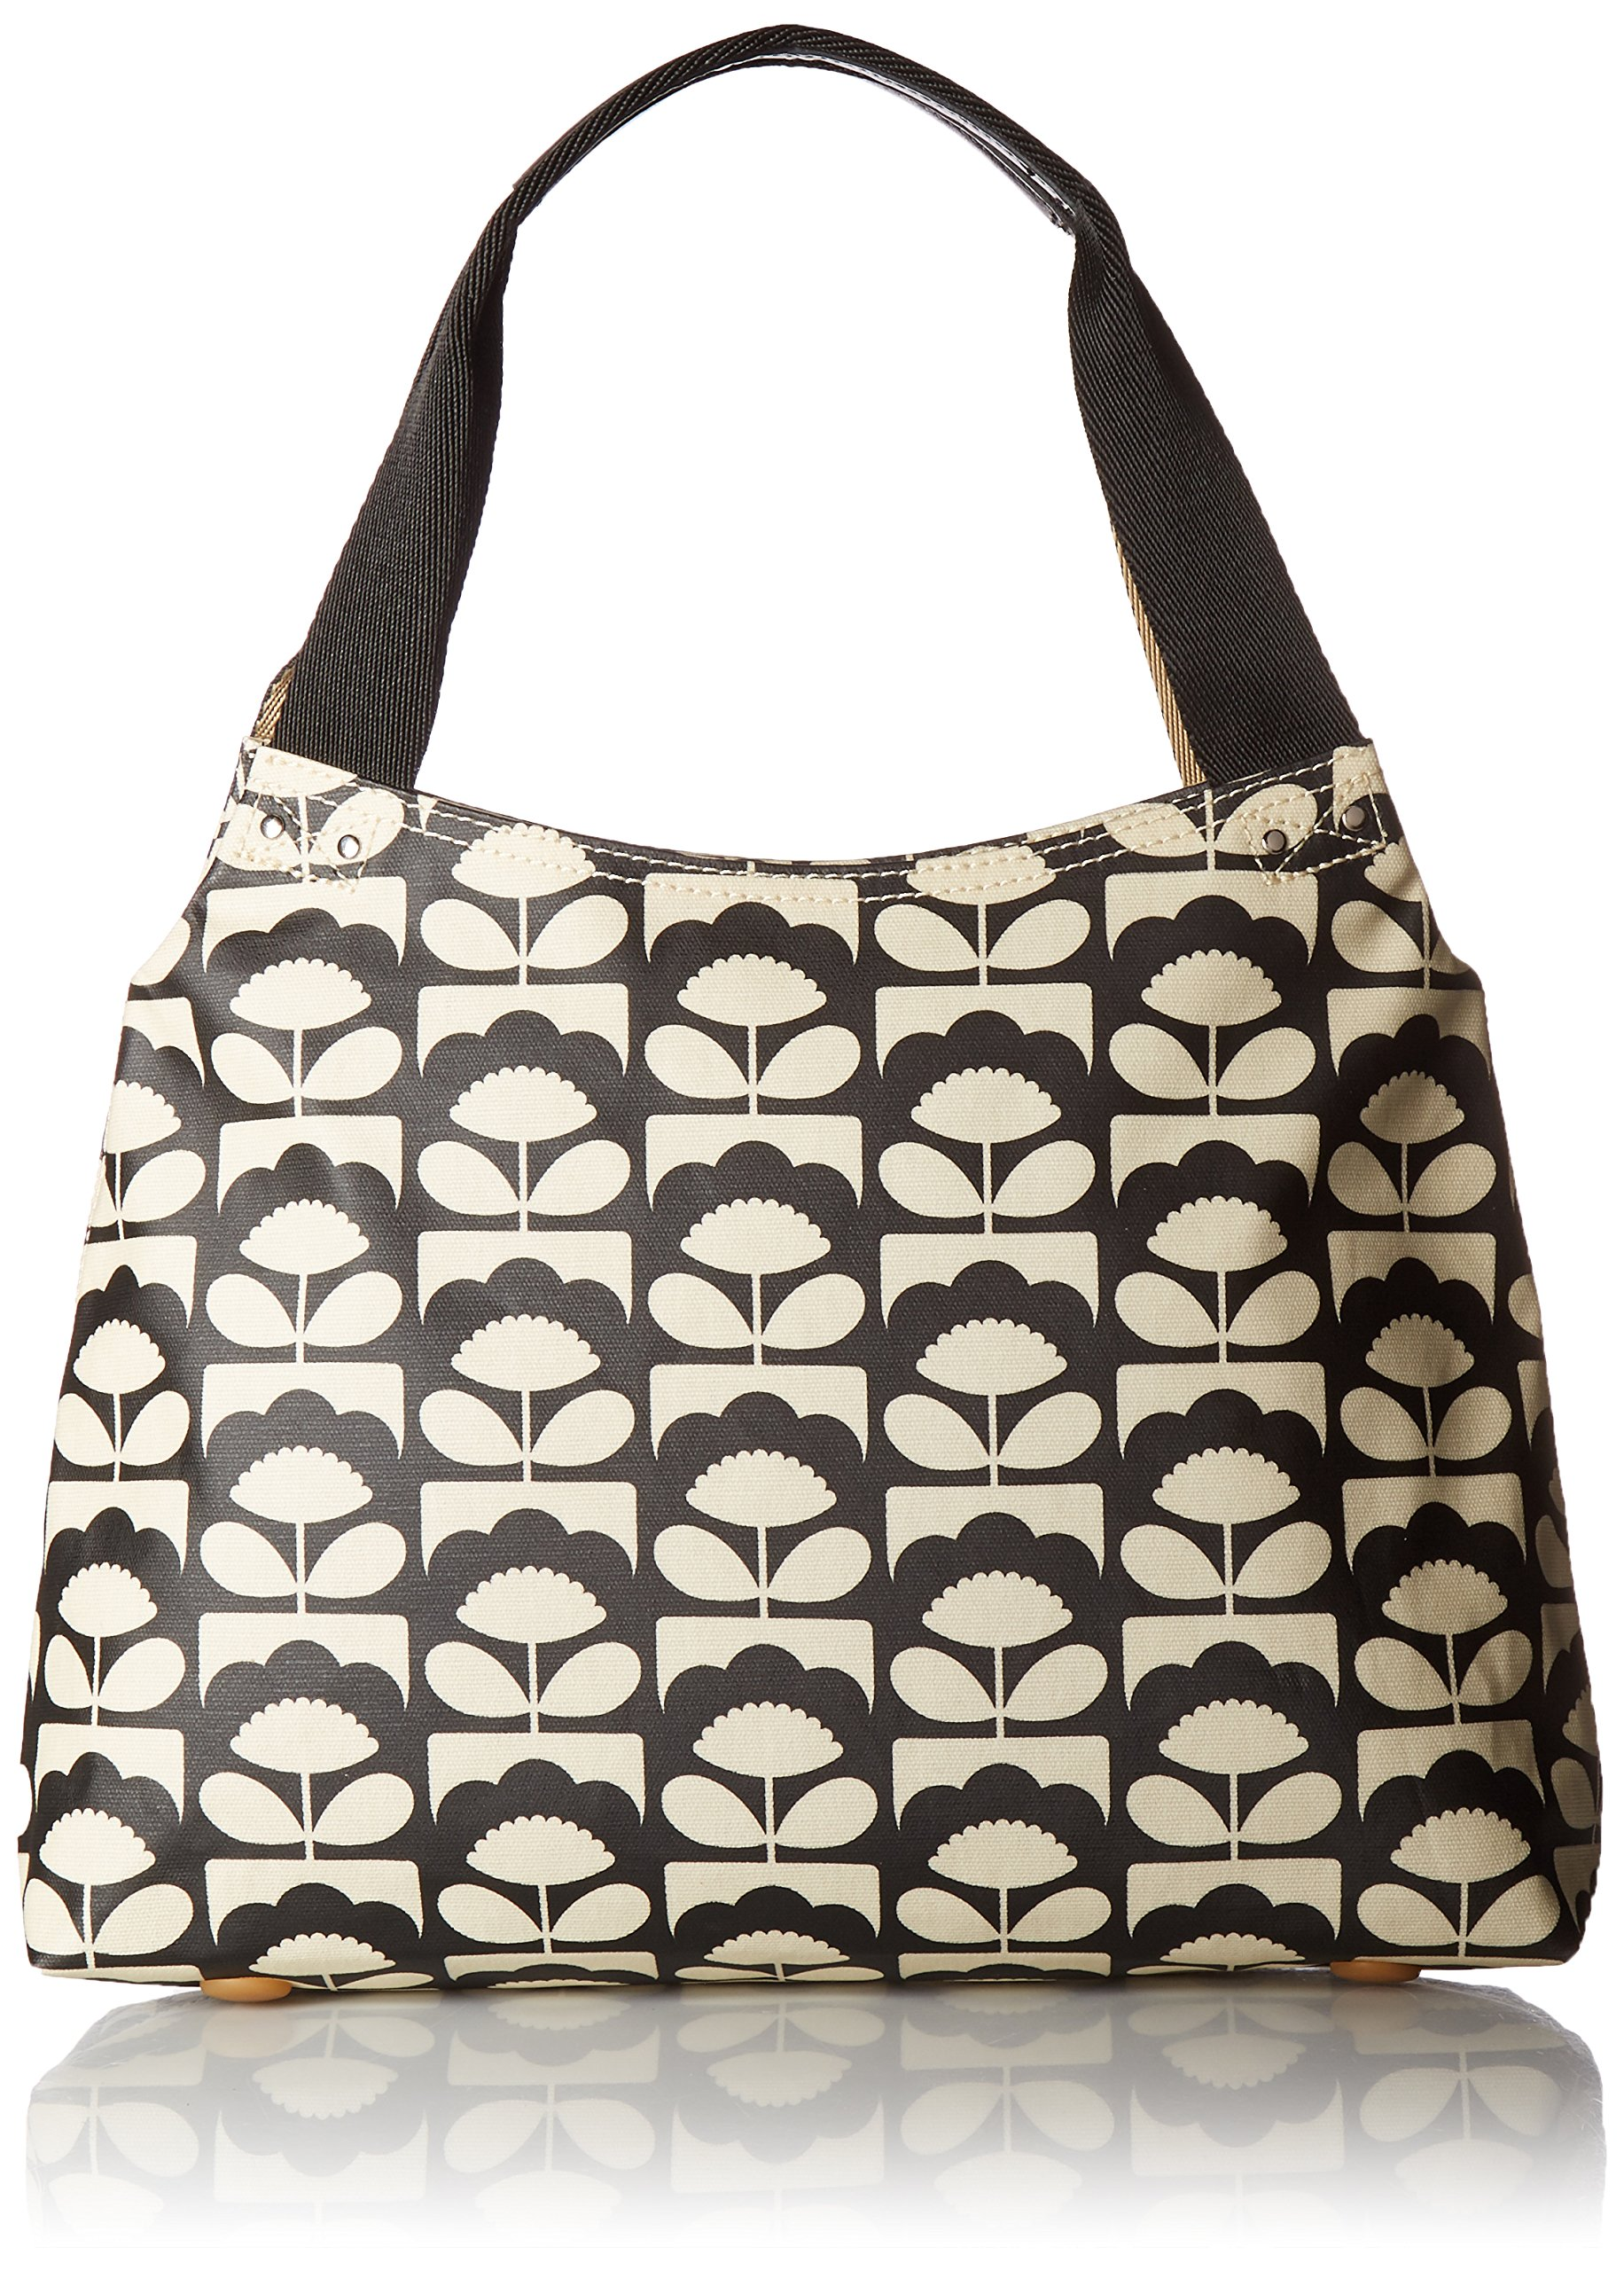 Orla Kiely Spring Bloom Classic Zip Shoulder Bag, Charcoal